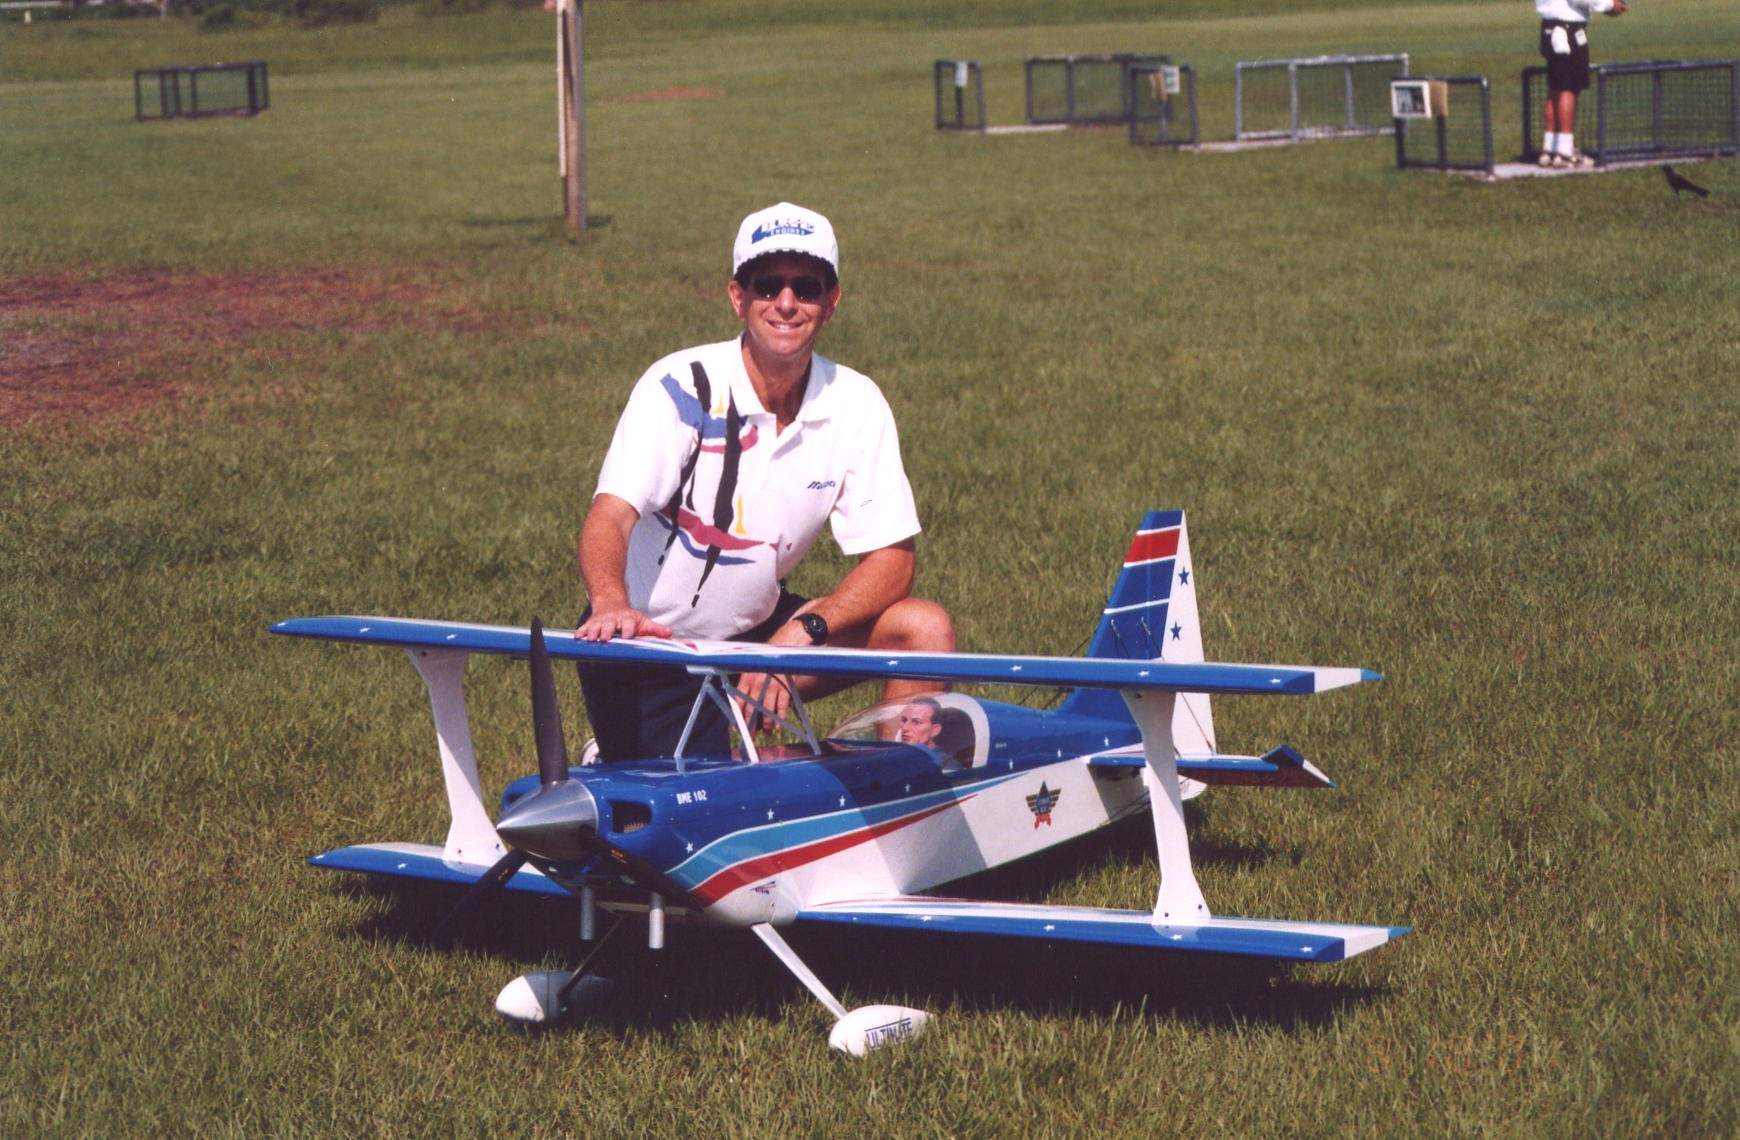 rc planes arf with Ohio75 Ultimate Review on Gpma1141 besides Marchetti Rc Plane also Horizon Hangar 9 Carbon Cub 15cc 2280mm Arf furthermore Hangar 9 Sukhoi furthermore Attachment.